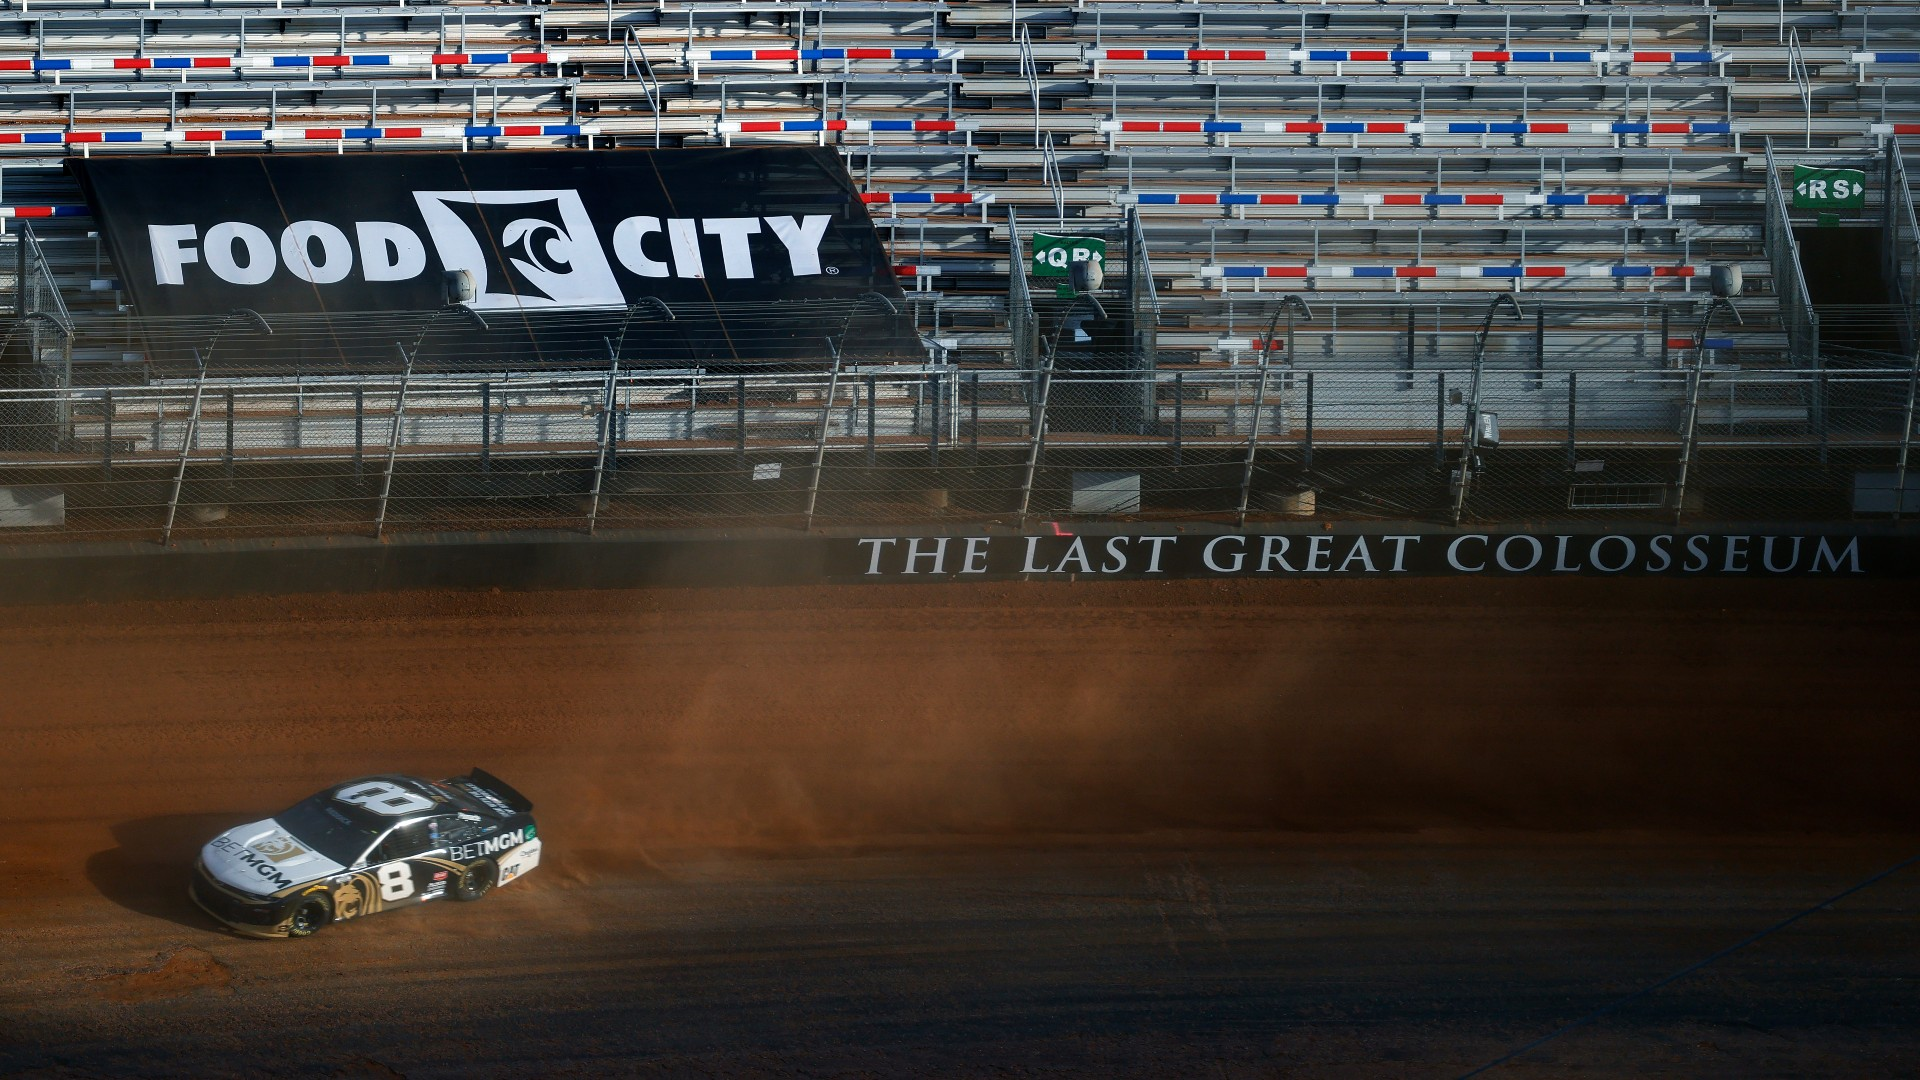 NASCAR at Bristol live race updates, results, highlights from Food City Dirt Race